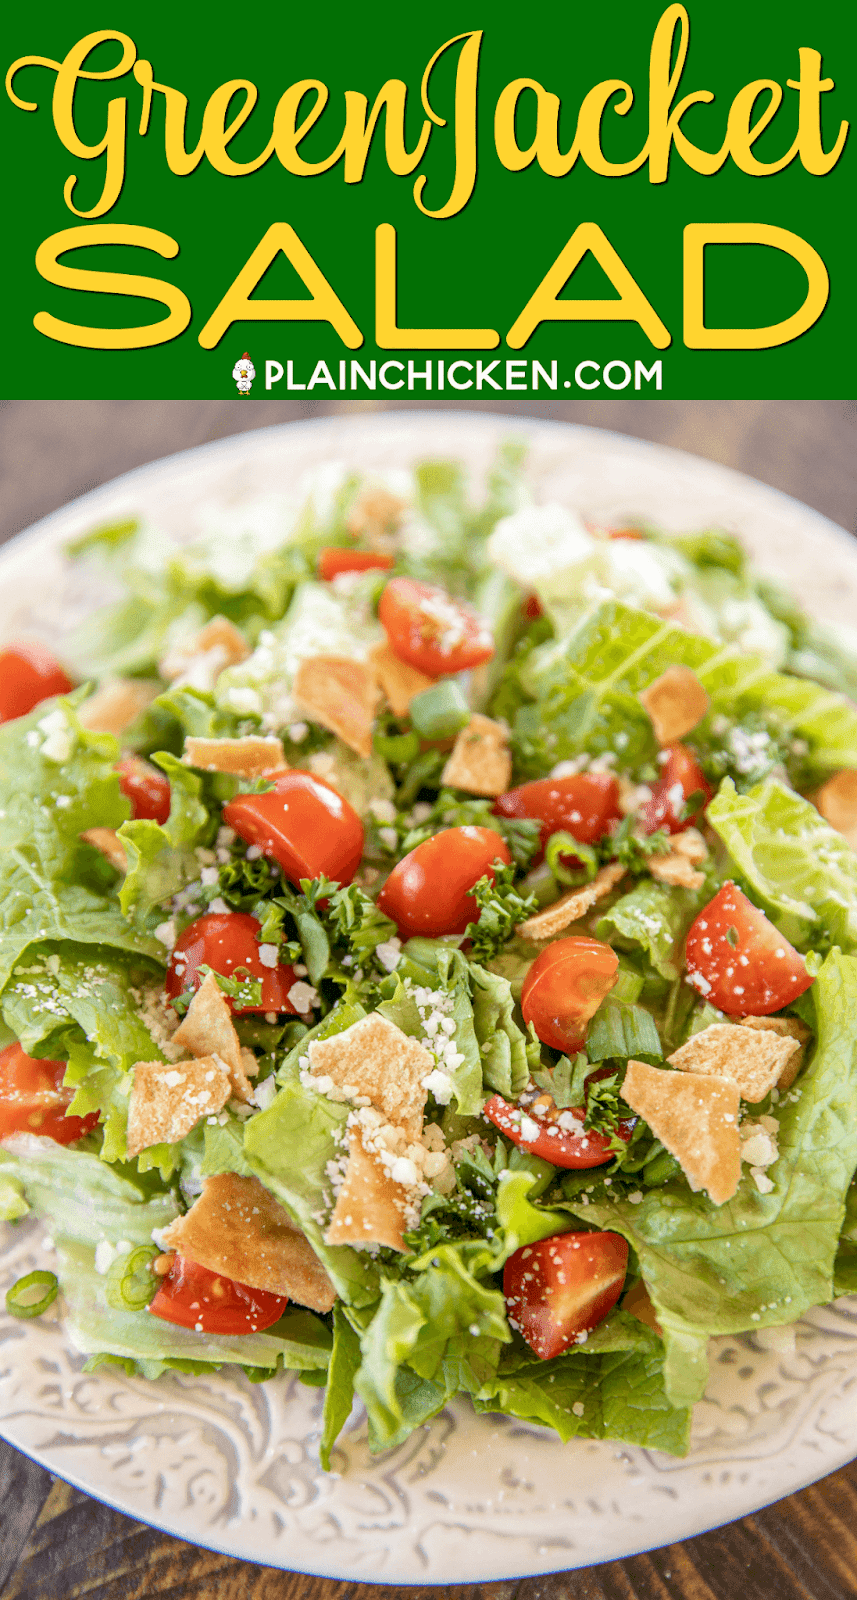 Green Jacket Salad - original recipe from the Green Jacket restaurant in Augusta. SO simple and it tastes great! Lettuce, tomatoes, parsley, green onions, pita chips, olive oil, red wine vinegar, seasoned salt, oregano and parmesan cheese. Goes great with chicken, steak, soup, sandwiches, pizza - anything! Can make in advance and toss together when ready to serve. #salad #masters #vegetables #recipe #sidedish